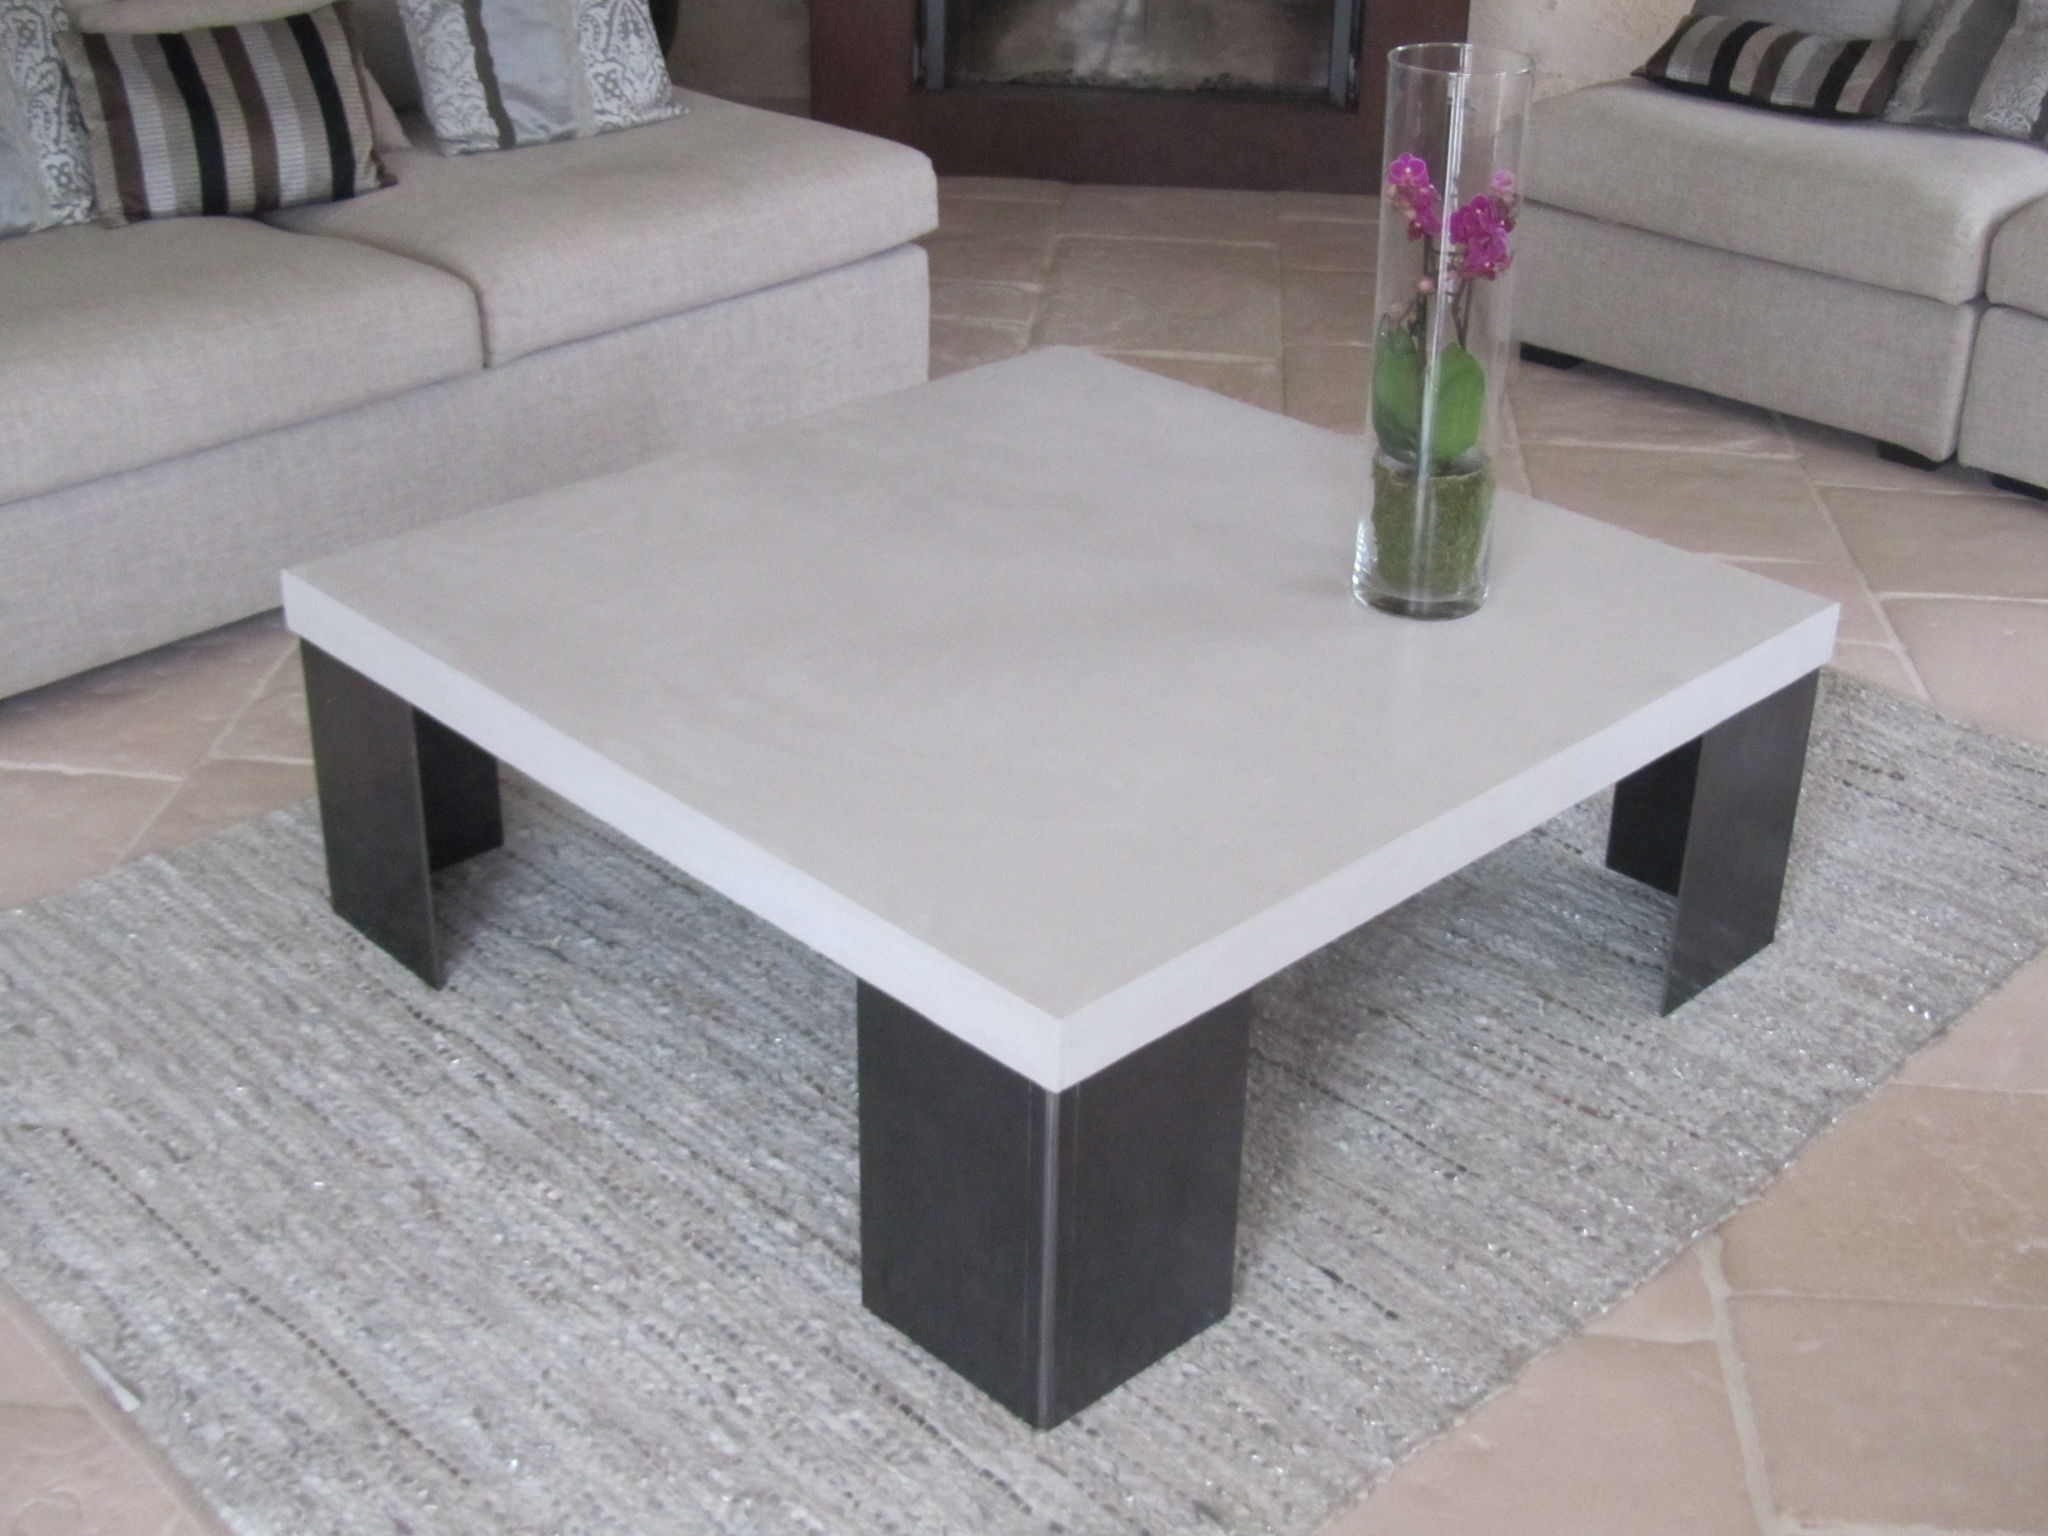 Table en beton cire pied en acier photo de beton cire le mobilier catherine pendanx - Table en beton cire ...